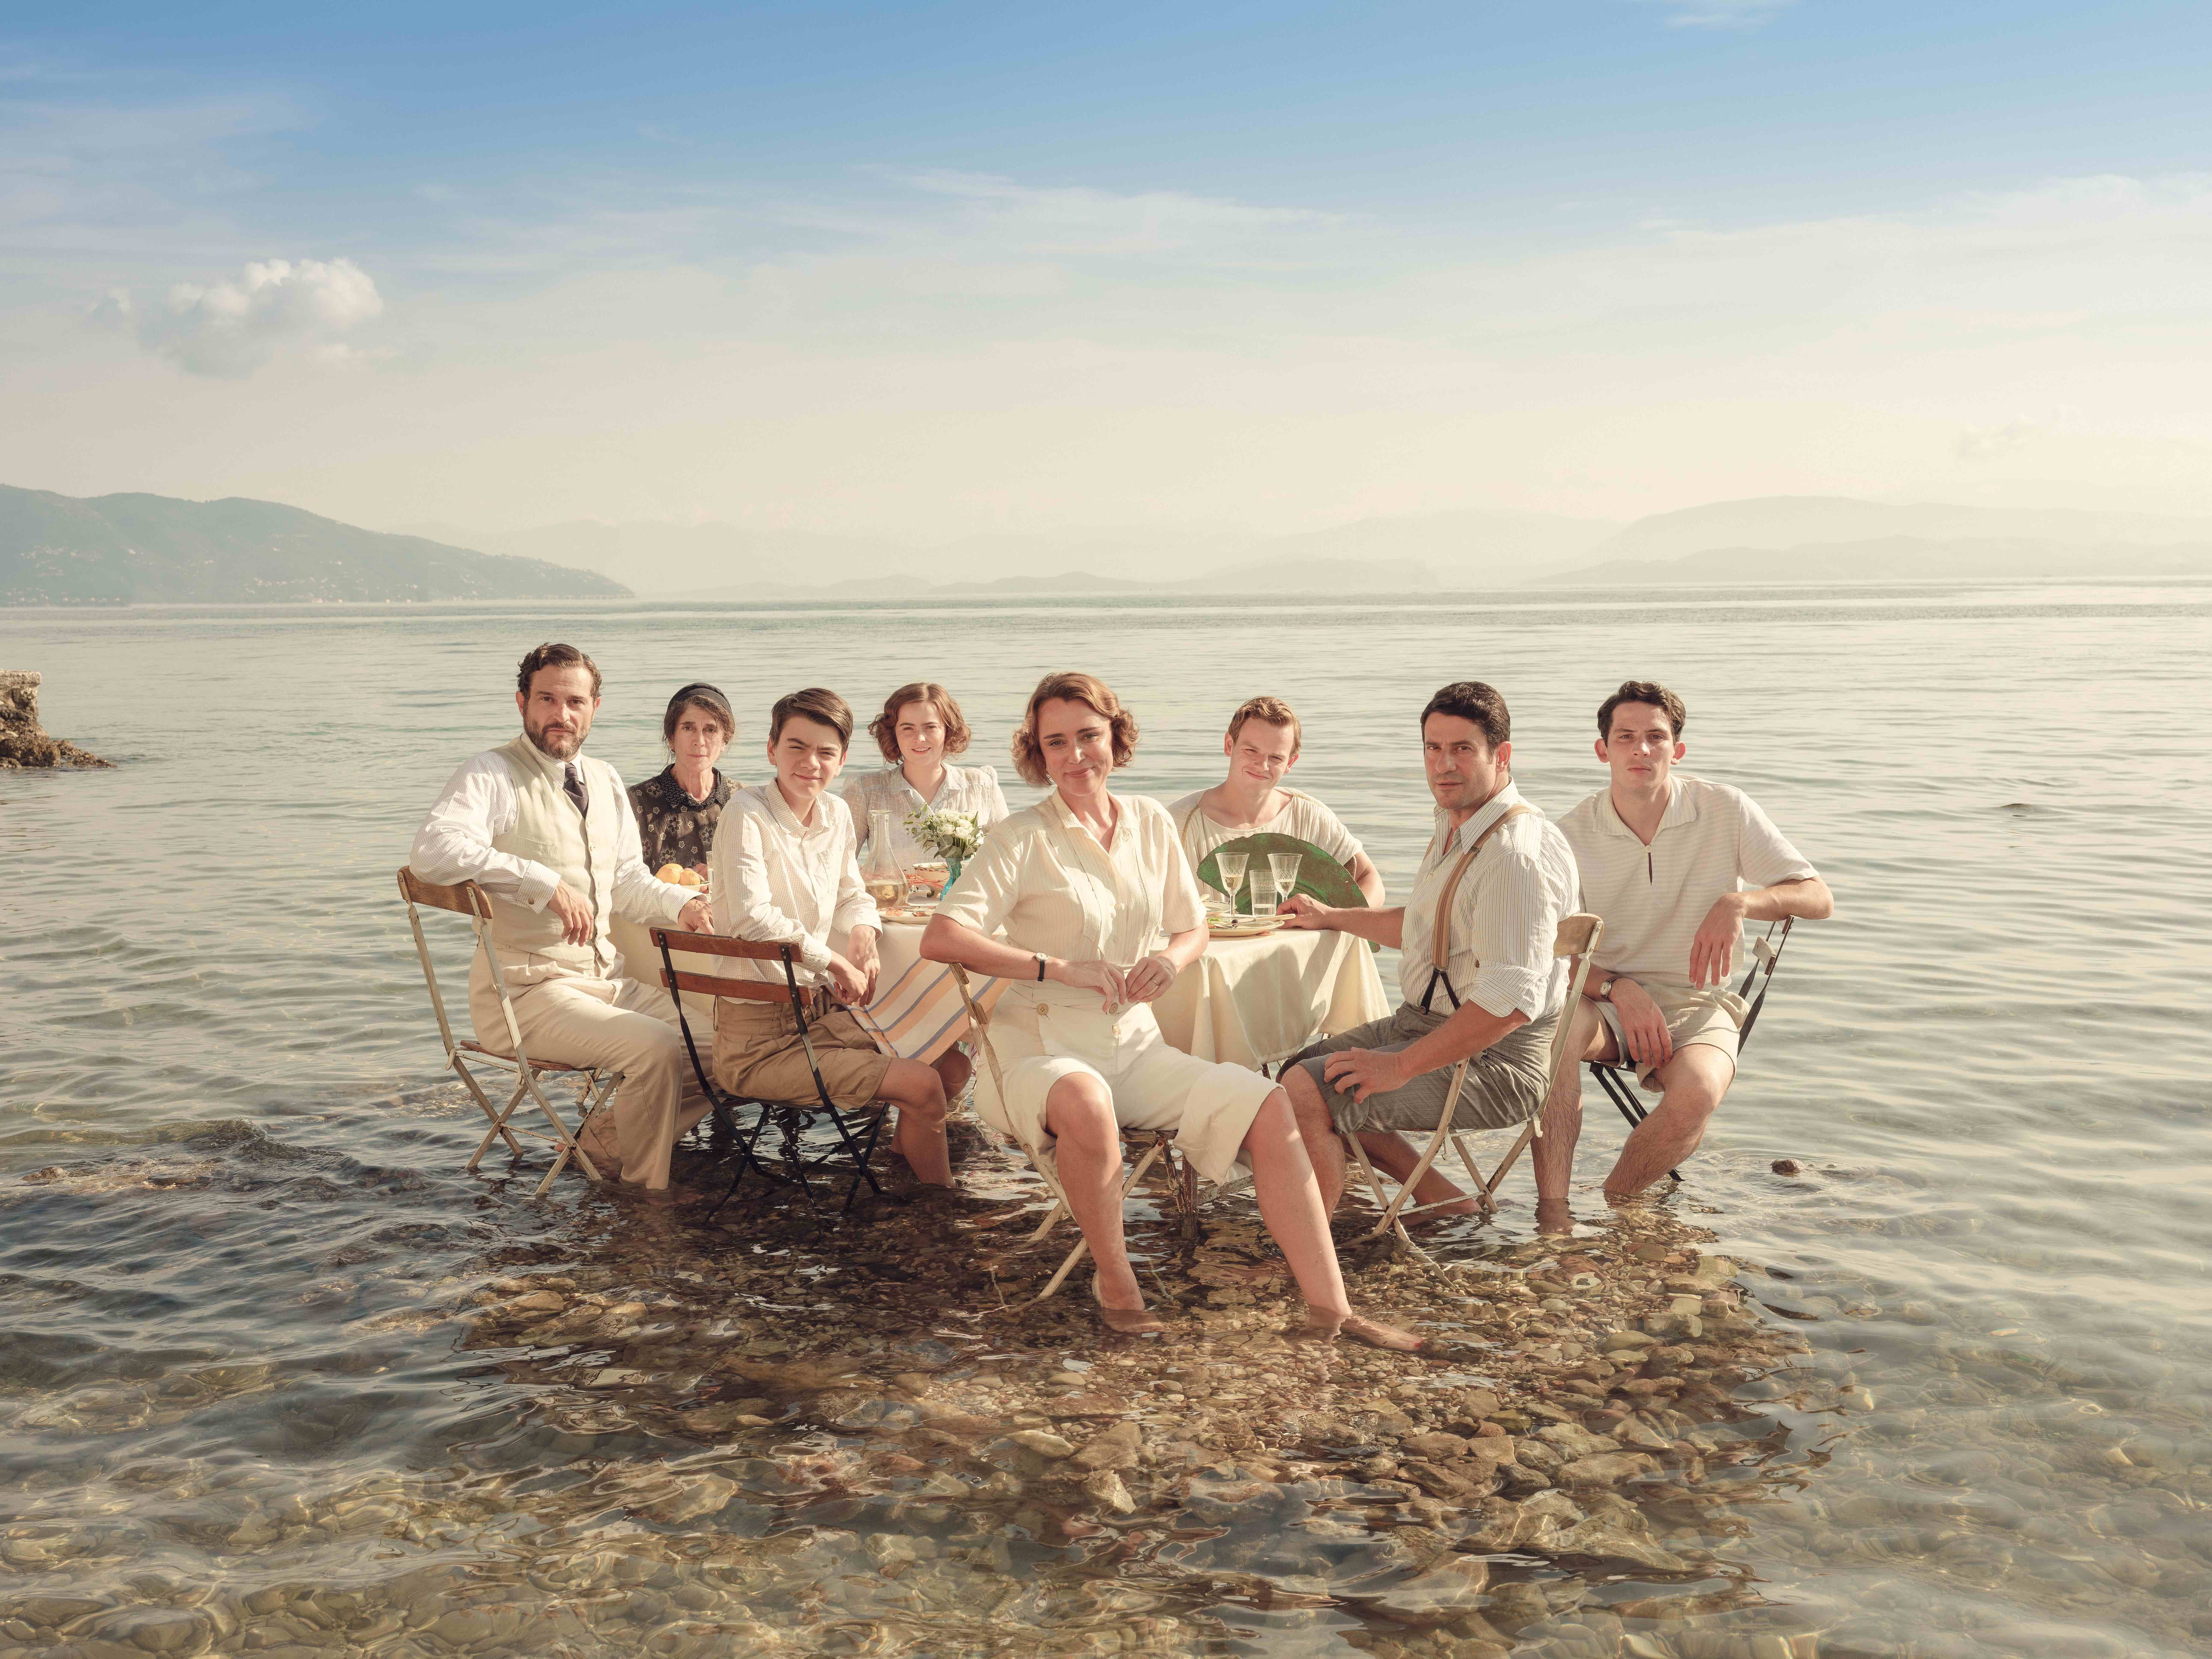 The Durrells sitting around a dining table in water